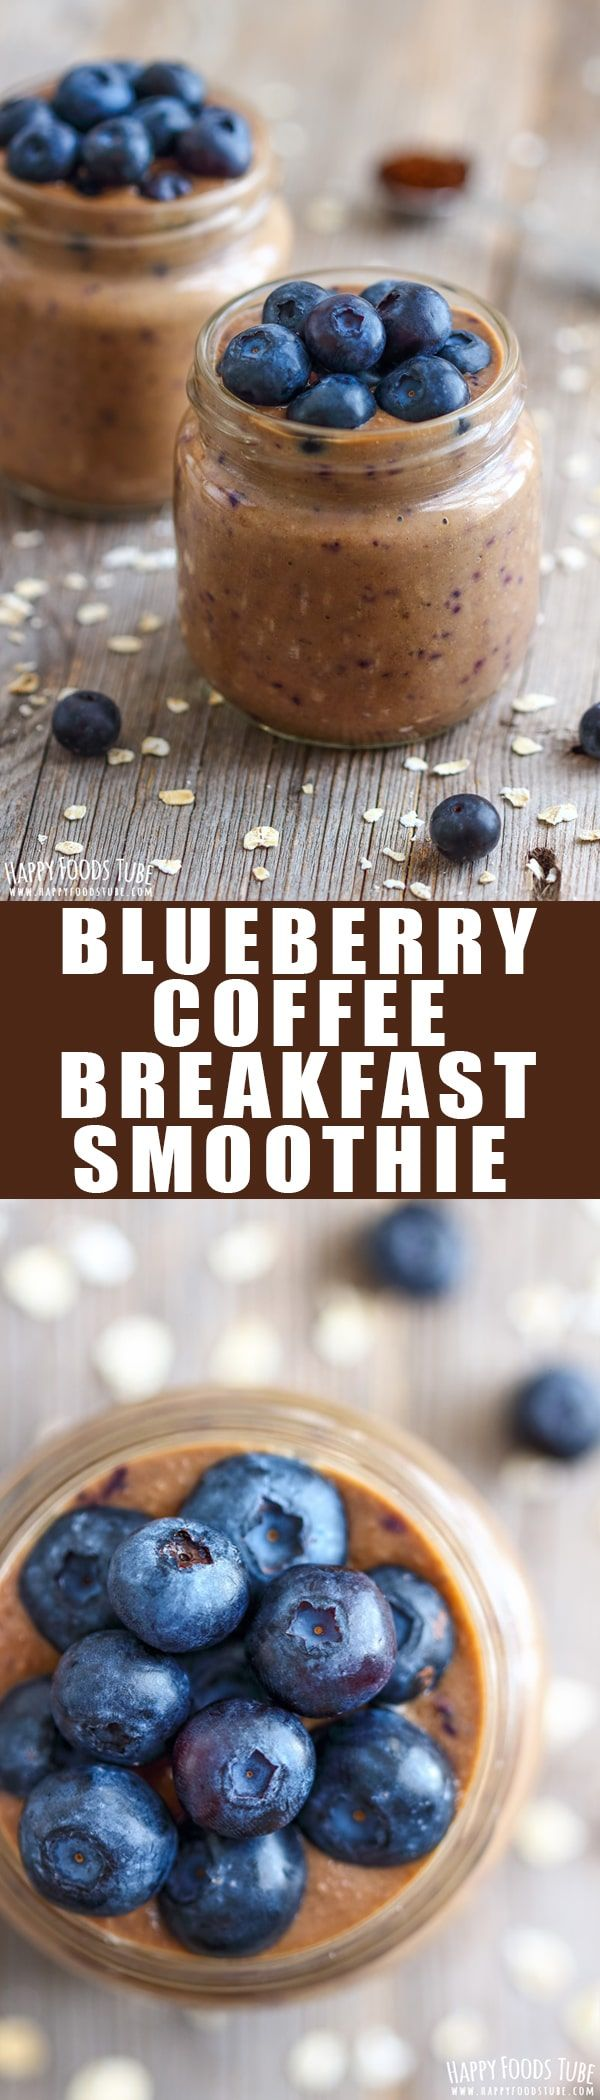 This is the ultimate breakfast for people on the go. Naturally sweet blueberry coffee breakfast smoothie is a quick and tasty way to start your day. Easy coffee smoothie recipe. Blender smoothie. Dairy free and gluten free smoothie. #smoothie #breakfast #coffee #instantcoffee #blueberry via @happyfoodstube